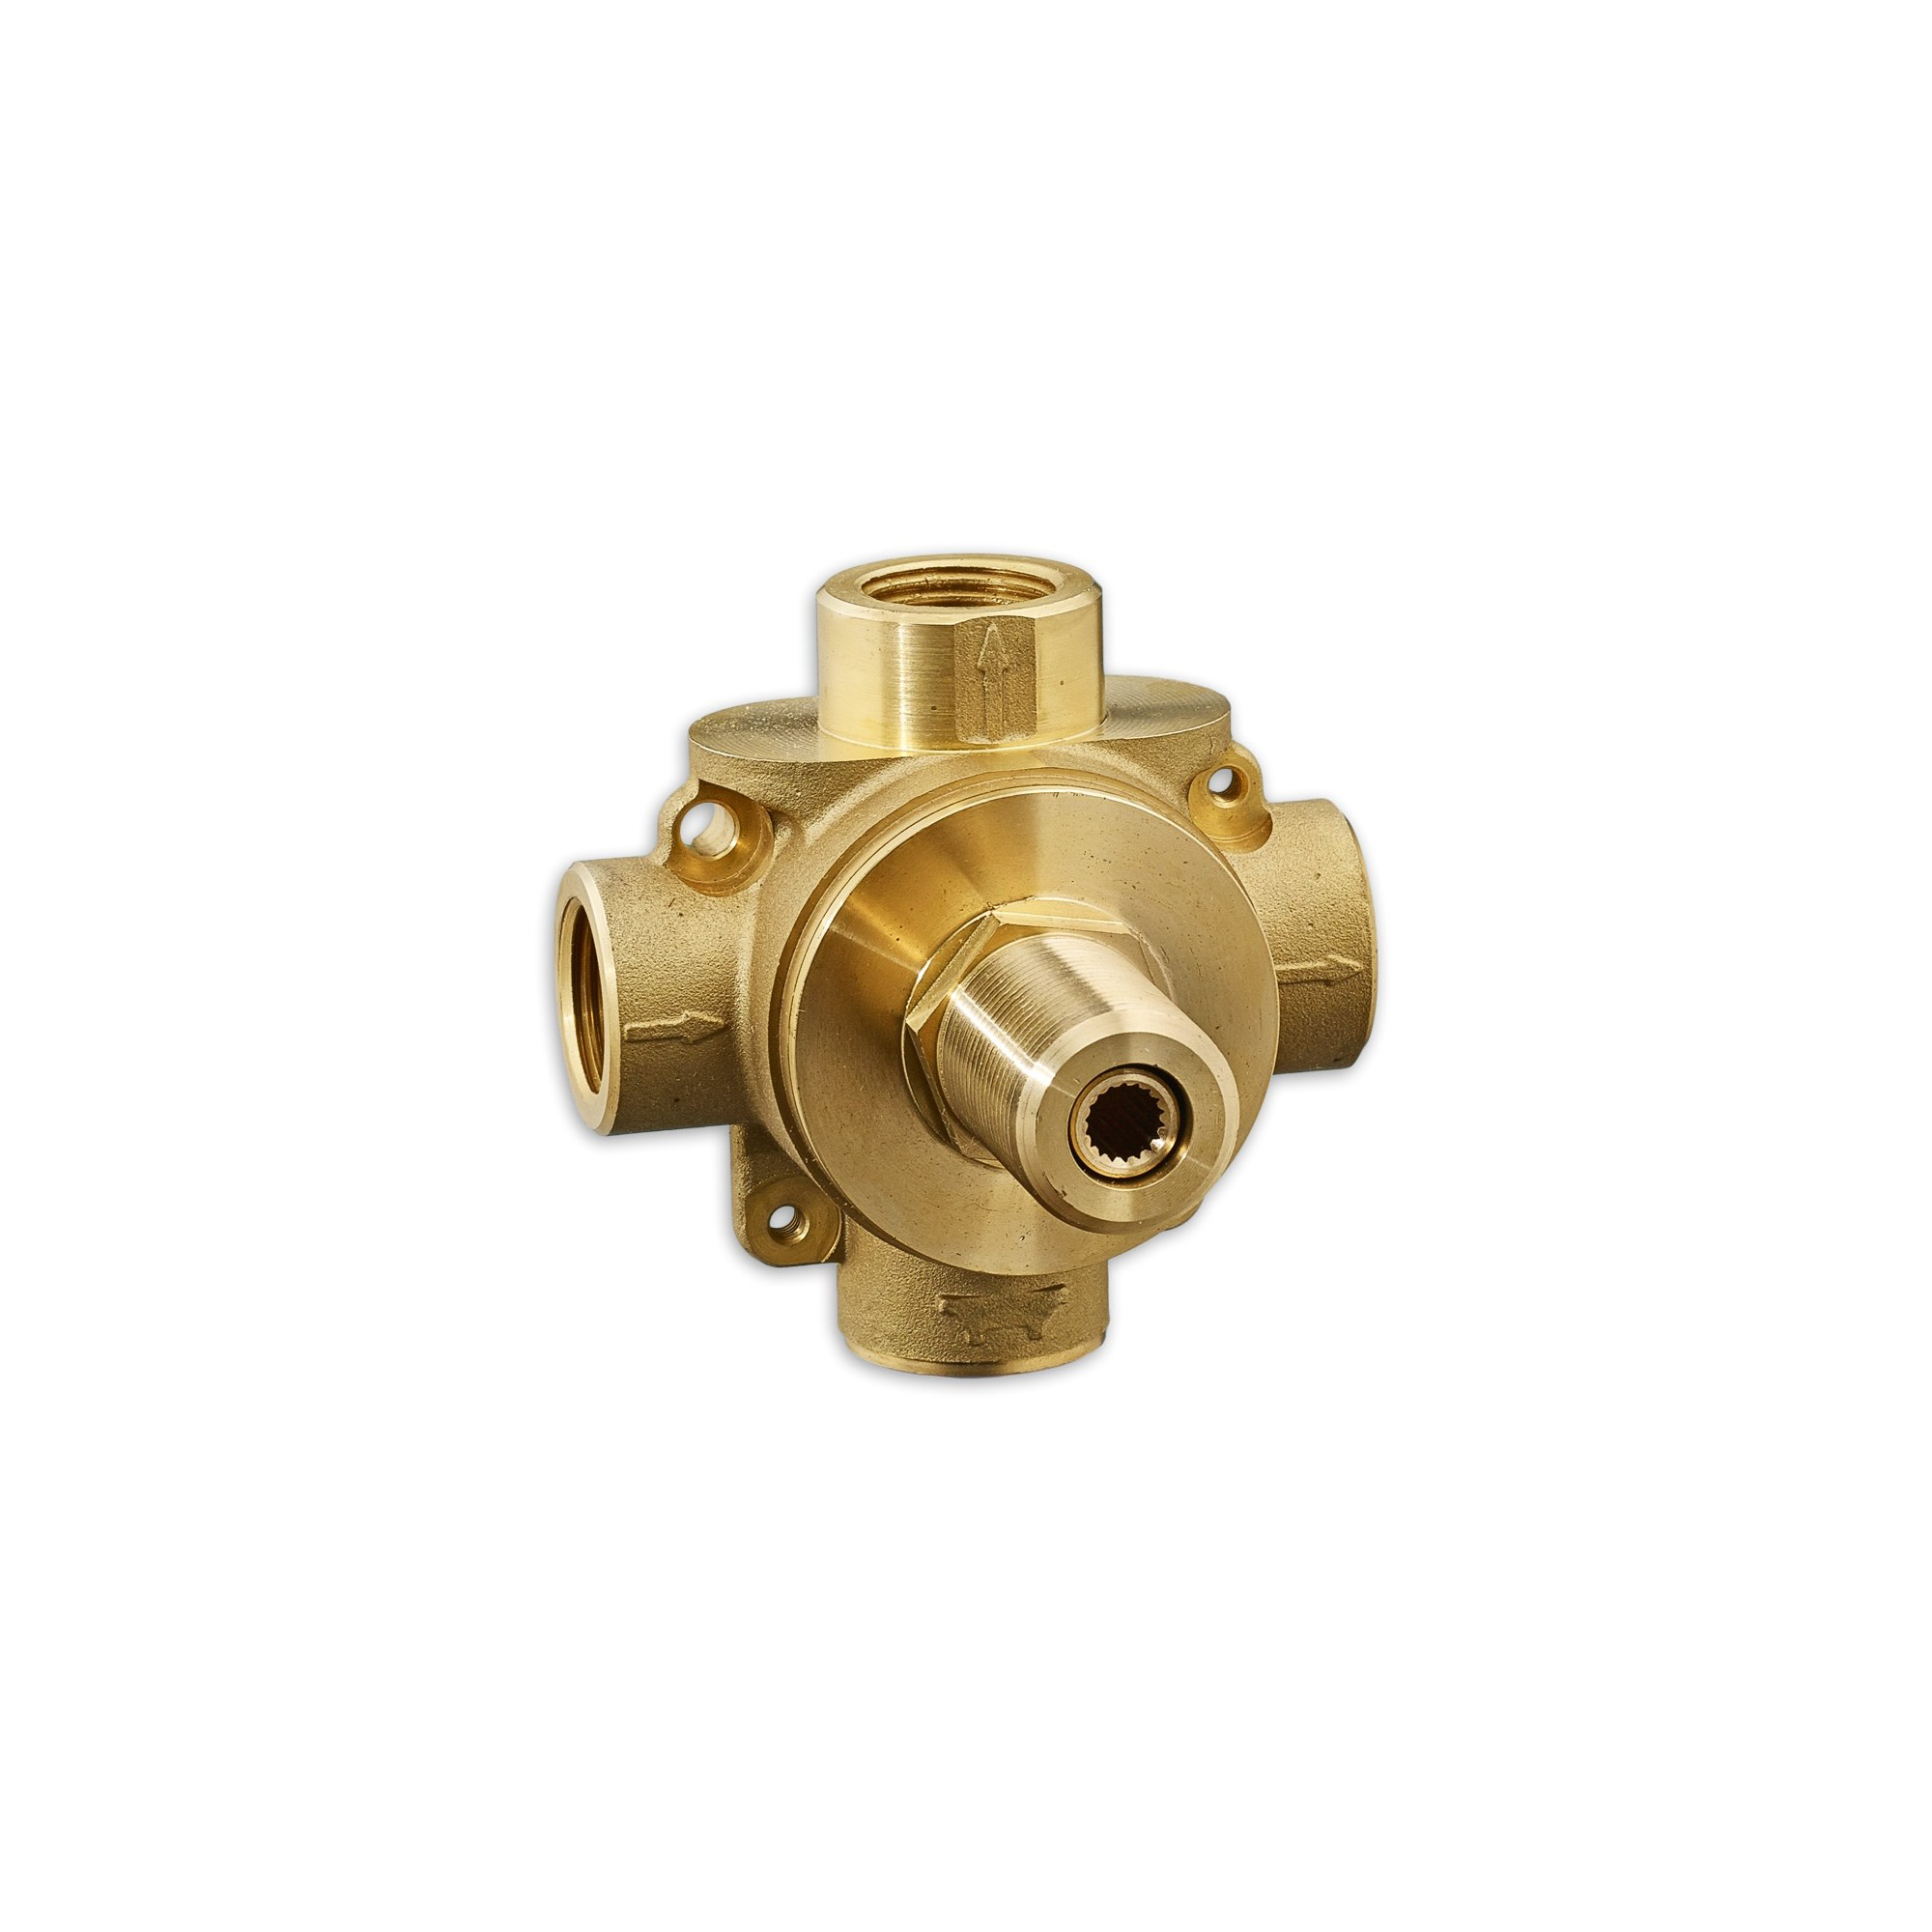 American Standard R433s 3 Way Diverter Rough In Valve With Shared